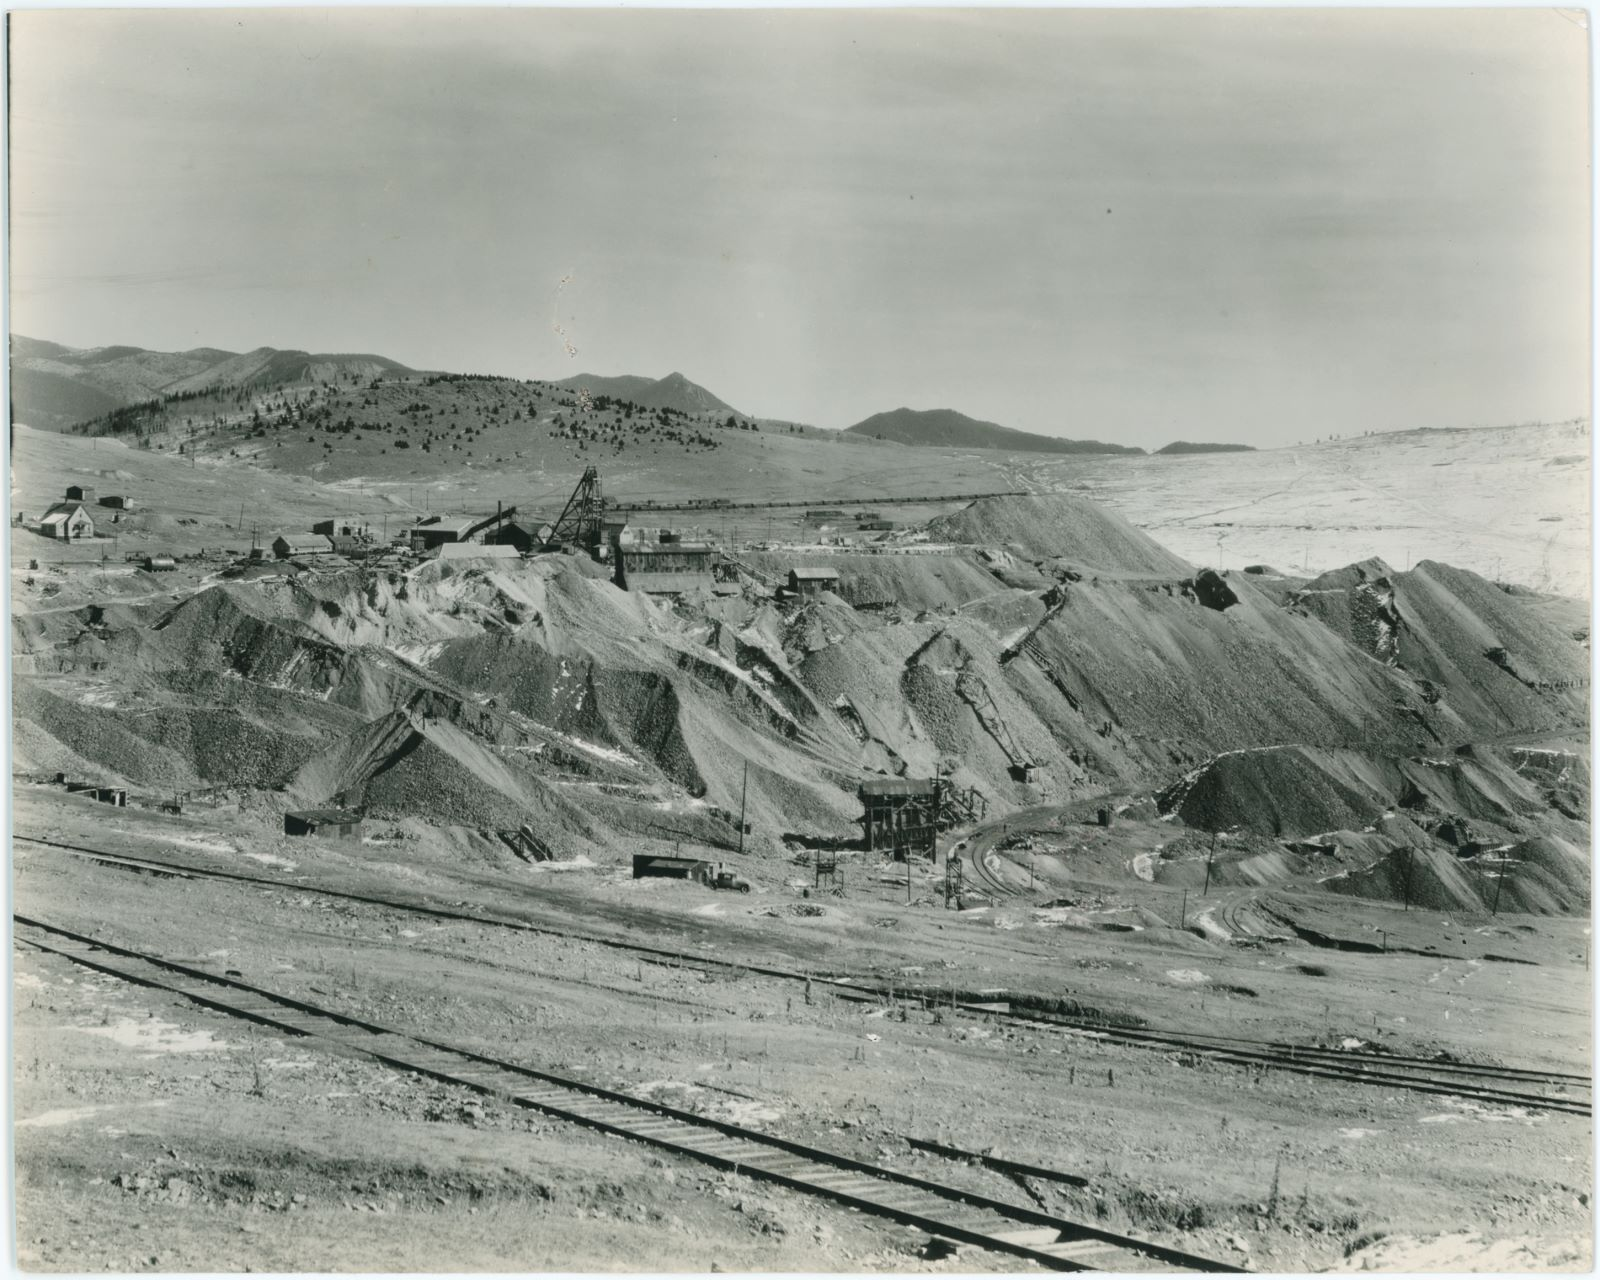 The Date of 1934 comes from the backside of this image, where it been handwritten together with pieces of text as this came from a Newspaper Archive, mention Sunday Section and what I think say 3 columns, no Newspaper name mention.    This view towards the Vindicator Mine operations, on eastern part of Bull Hill, has some of the still existing Midland Terminal tracks in the foreground, which at one time in the past might been part of either the High Line Trolley operations of the Electric Division of the Short Line, or even possible the narrow gauge Golden Circle operation, as this view is from near the Last Dollar mine, just can't tell exactly where.    The Vindicator Mine dominates with its huge dumps the more background part of this image, with a huge string of boxcars in the Bull Hill Yards of the M.T. making up the background scene behind the more top part of the headframe of the Vindicator, and of course the mountains in the horizon background.    About 1/3 up from bottom and about 3/7 in from right-hand side, there is a large Ore-bin or an Ore-house, that might have been part of the Longfellow Operations, where there is also a smaller headframe this side of that bin/house visible not too far away. Across the tracks seen curving away toward right is where the former Independence Depot along M.T. was located.